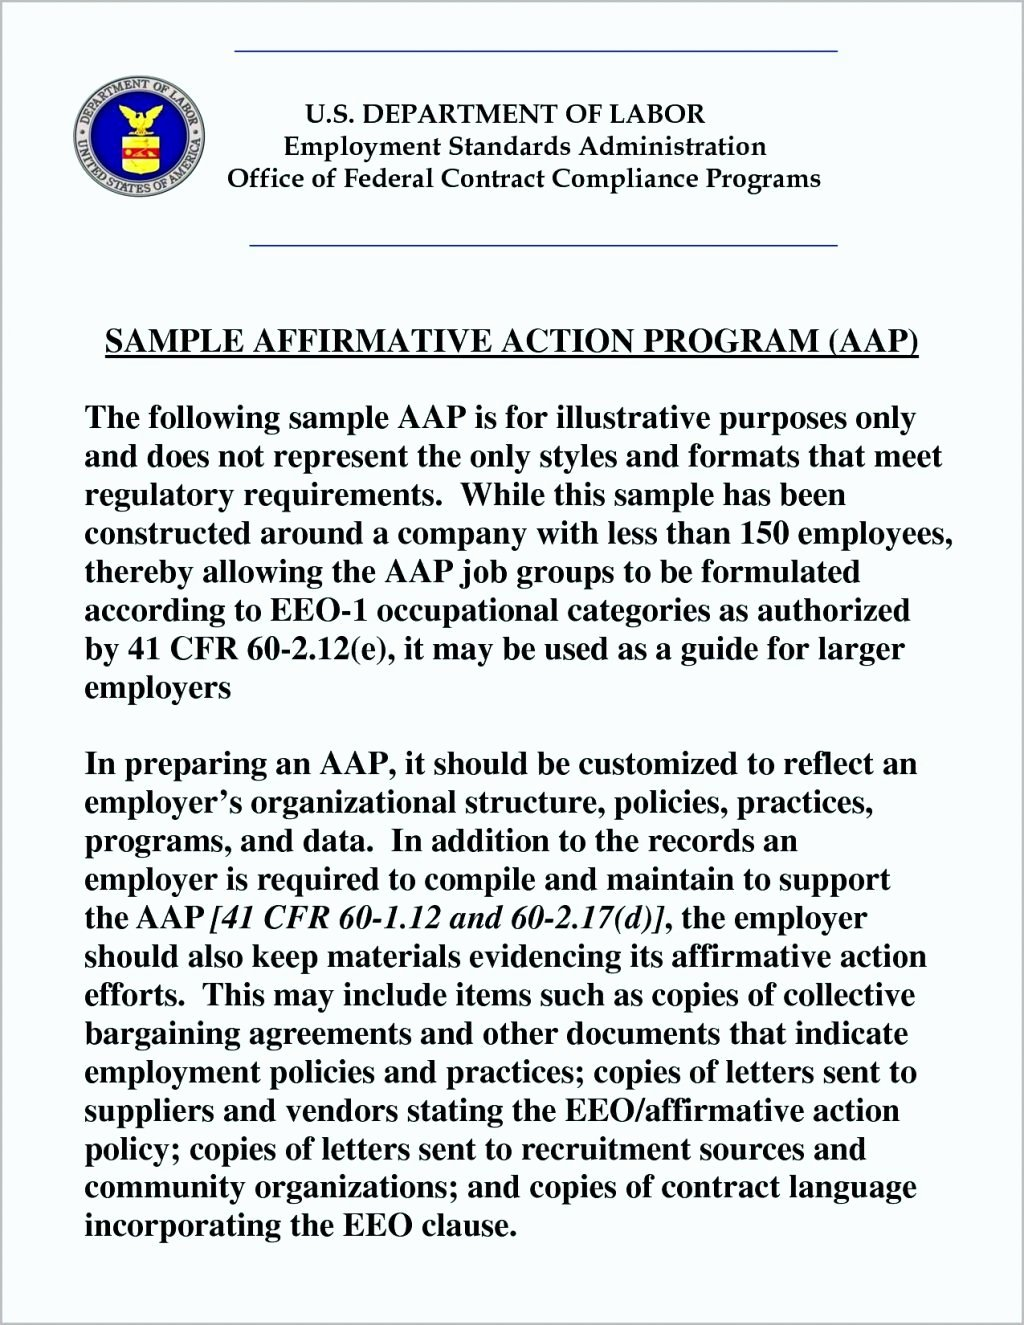 Affirmative Action Plan Template Awesome Affirmative Action Plan Template for Small Business